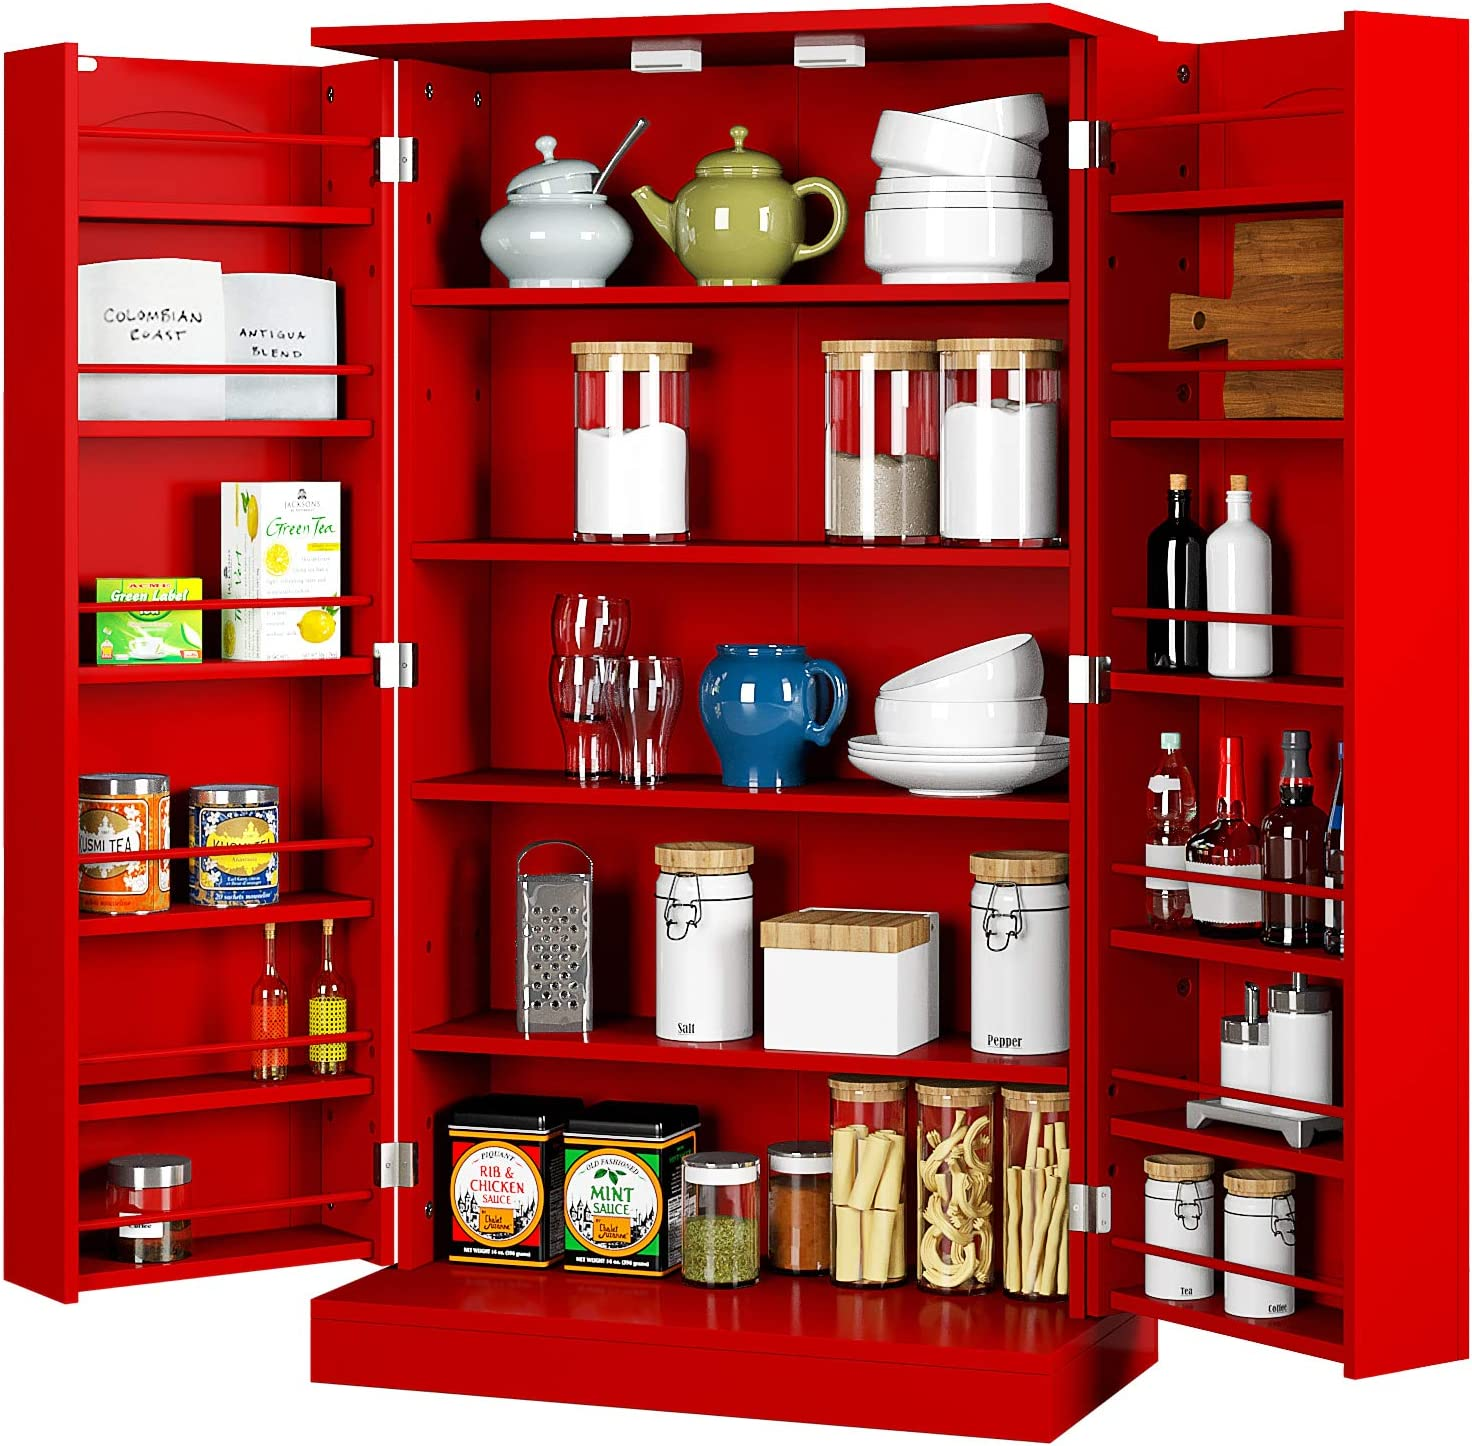 HOMEFORT Kitchen Pantry Cabinet with Storage Our shop OFFers the Nippon regular agency best service Adjustab 6